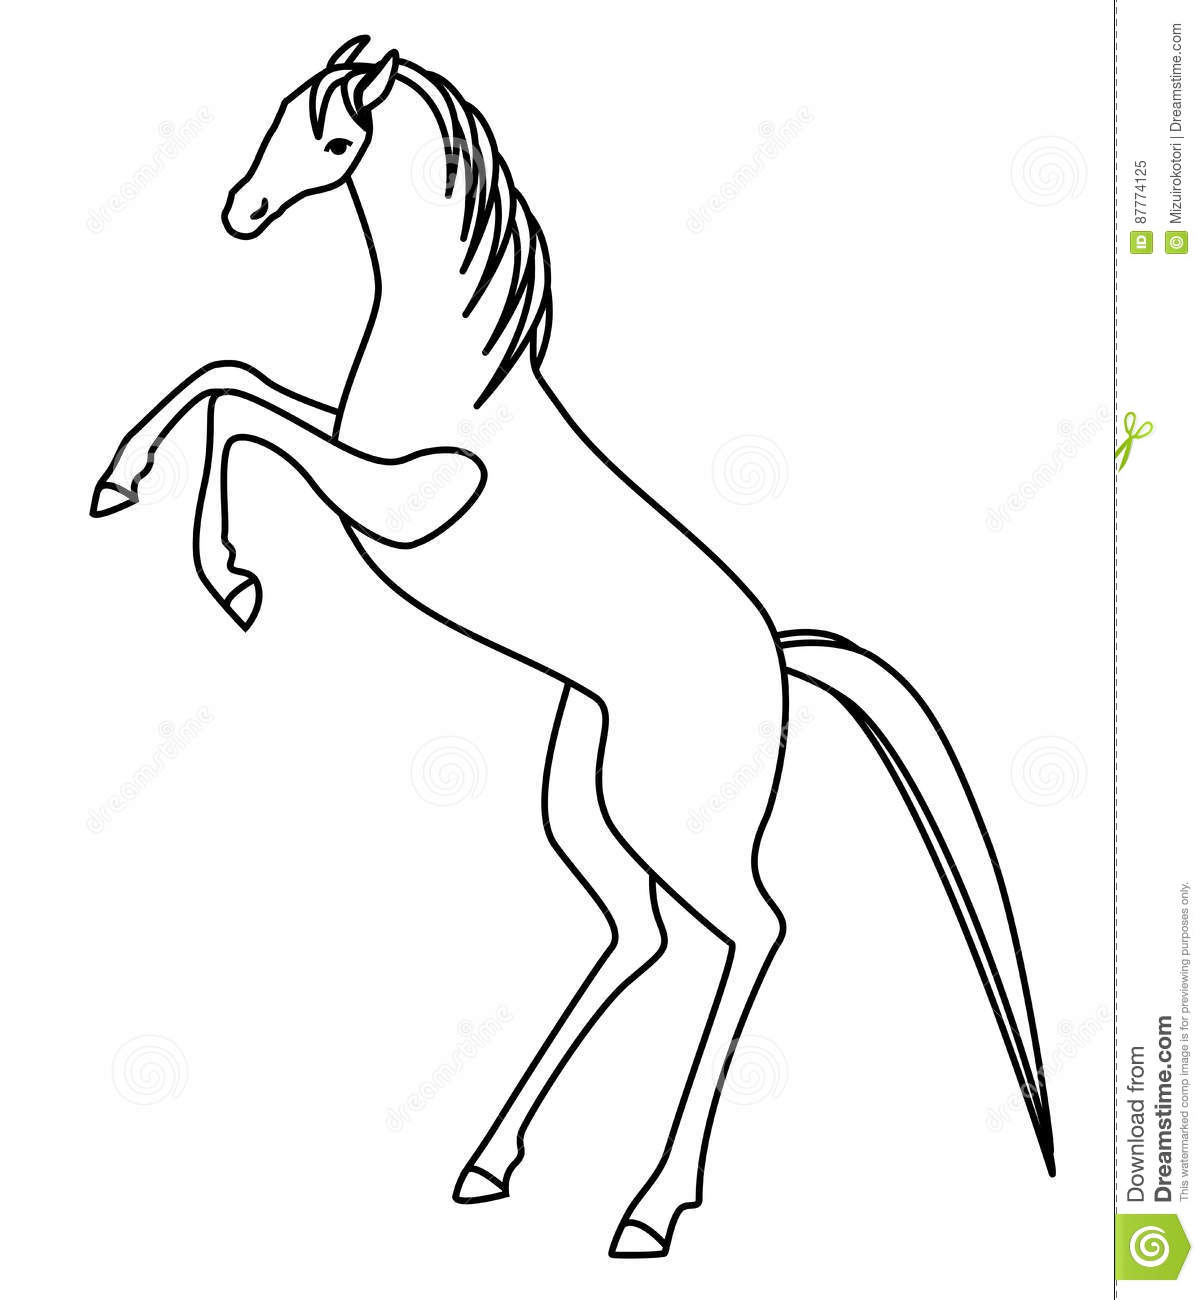 Horse Standing Hind Legs Drawing,Standing.Printable Coloring Pages ...